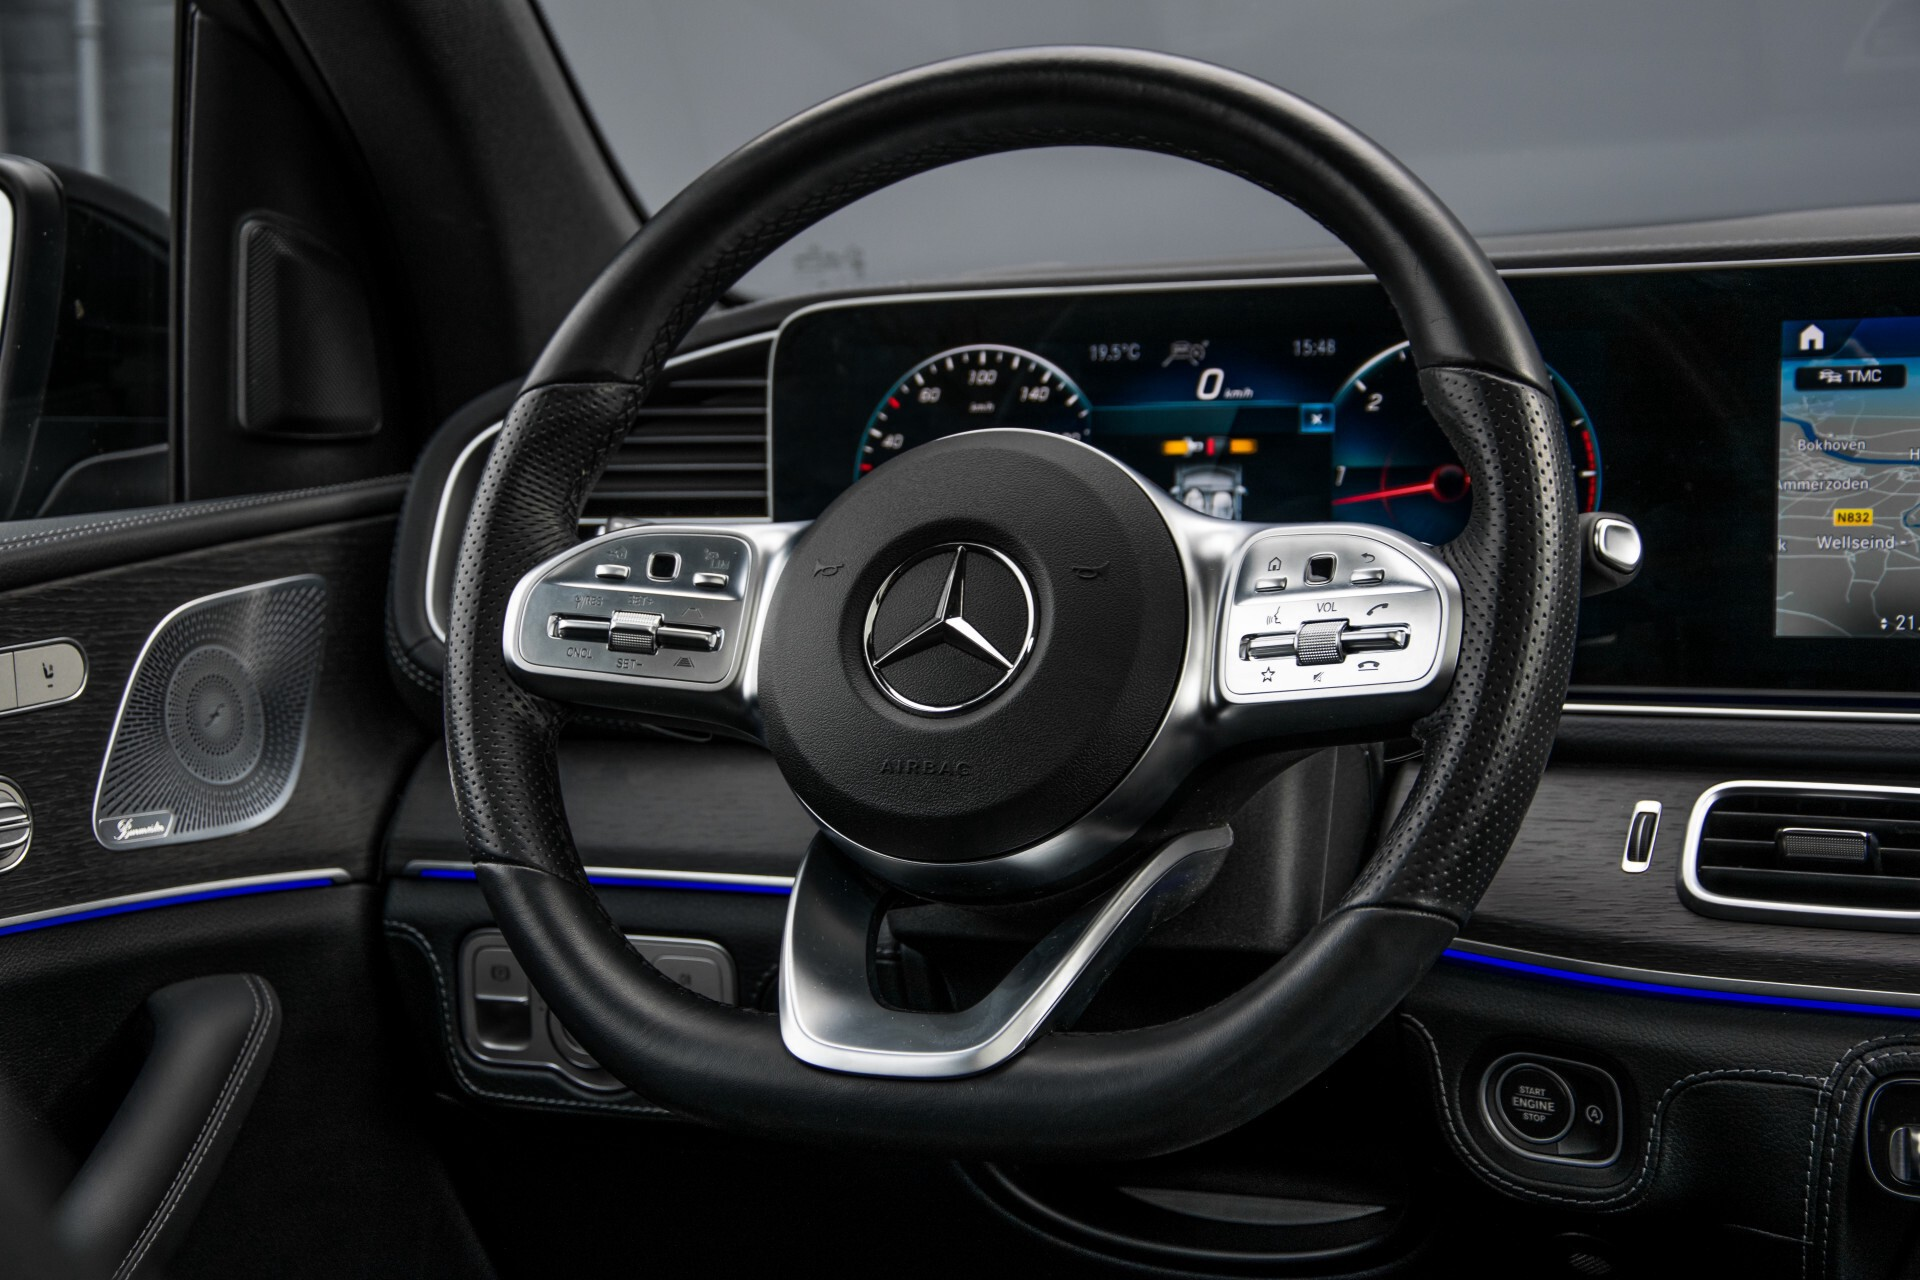 Mercedes-Benz GLE 400 d 4-M Luchtvering/Distronic/Keyless/HUD/Burmester/Nappa/360 camera/Panorama Aut9 Foto 9